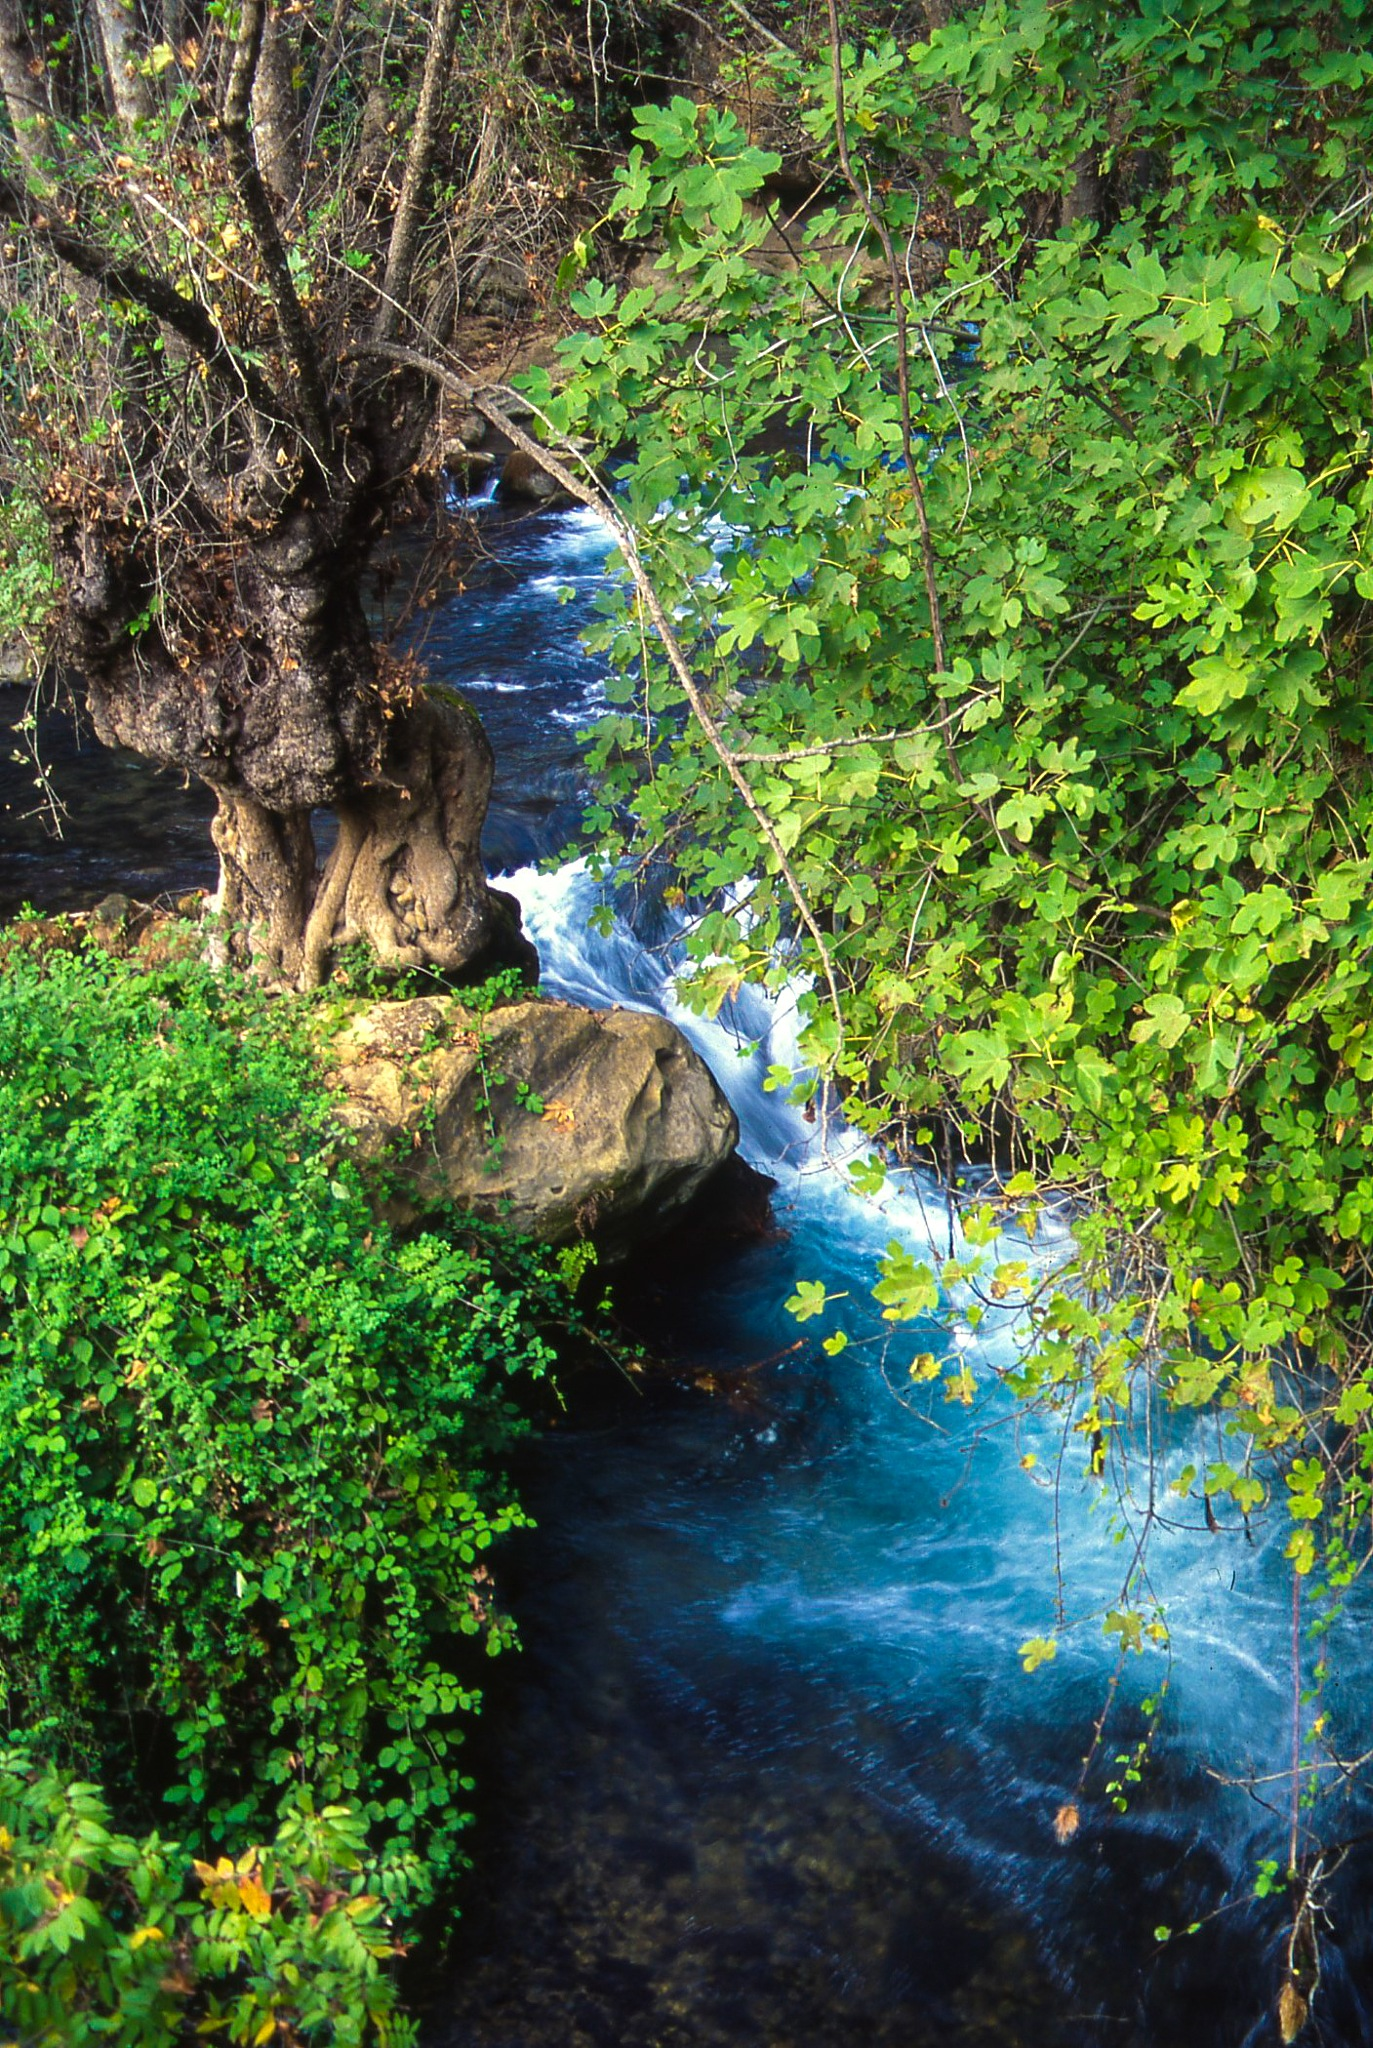 Stream by the Tree by Ron Stollman